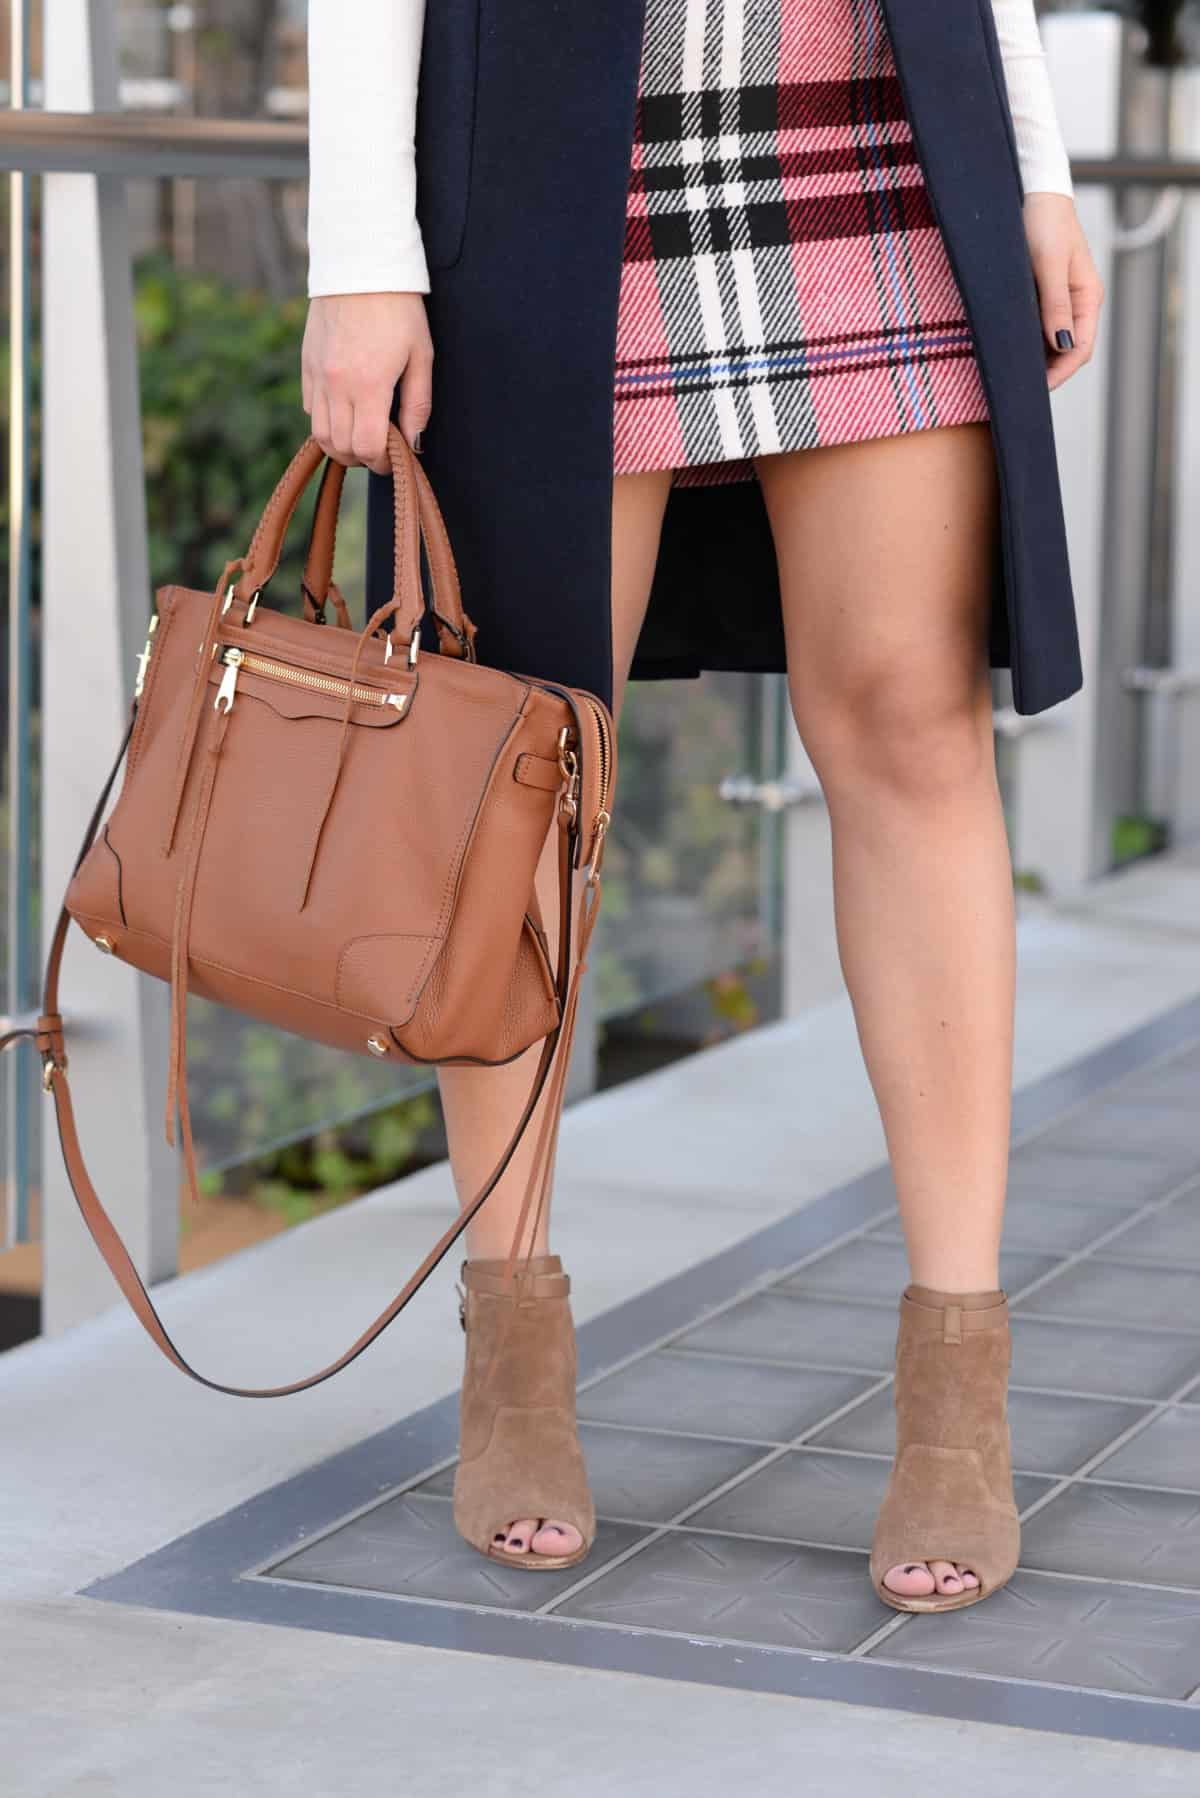 plaid skirt outfit, plaid skirt and long vest, fashion inspiration, fall outfit ideas - @mystylevita